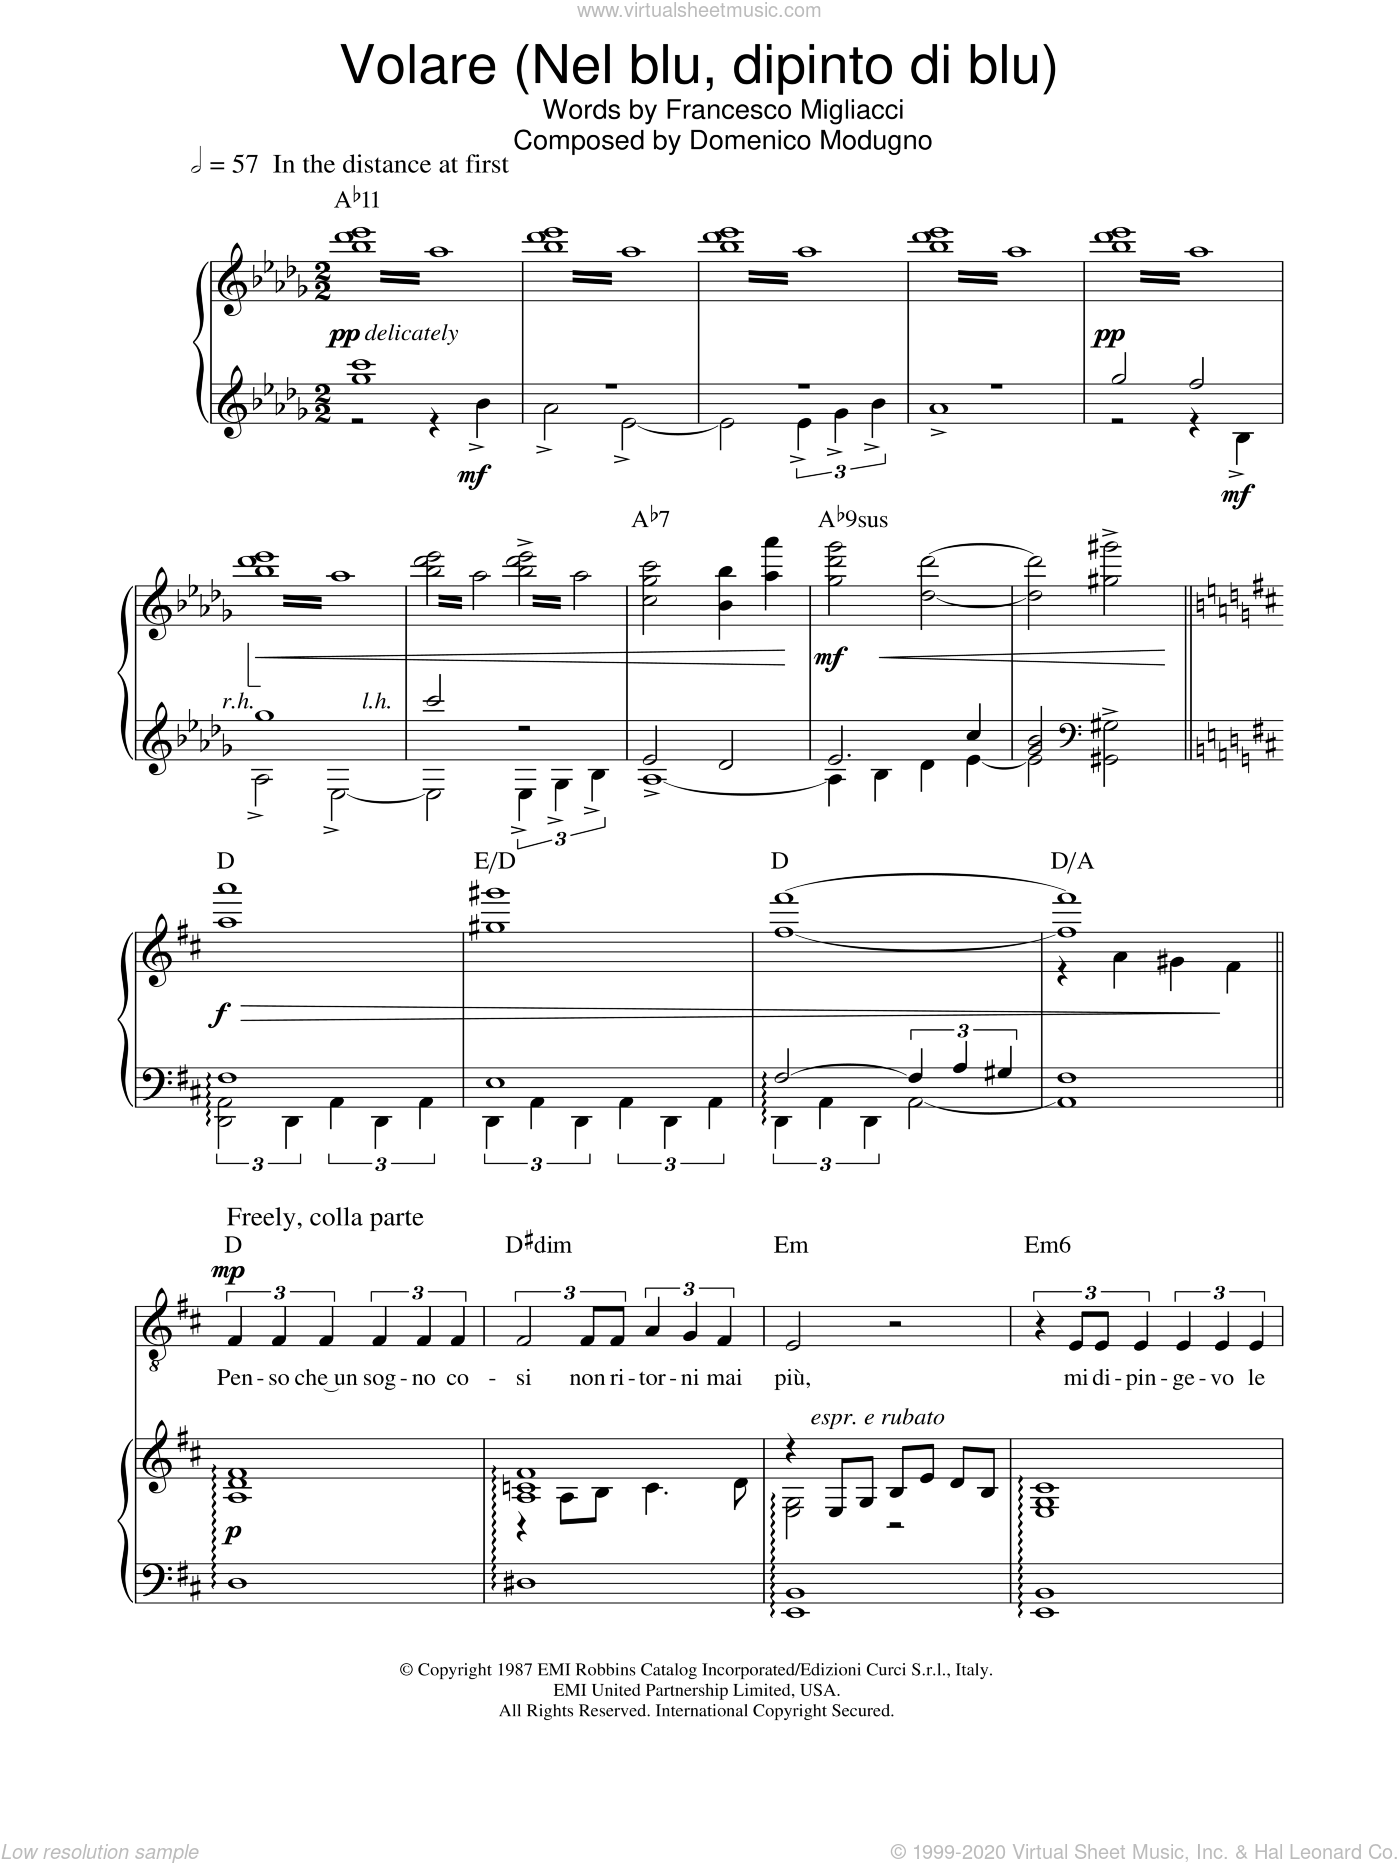 Volare (Nel Blu, Dipinto Di Blu) sheet music for voice, piano or guitar by Franco Migliacci